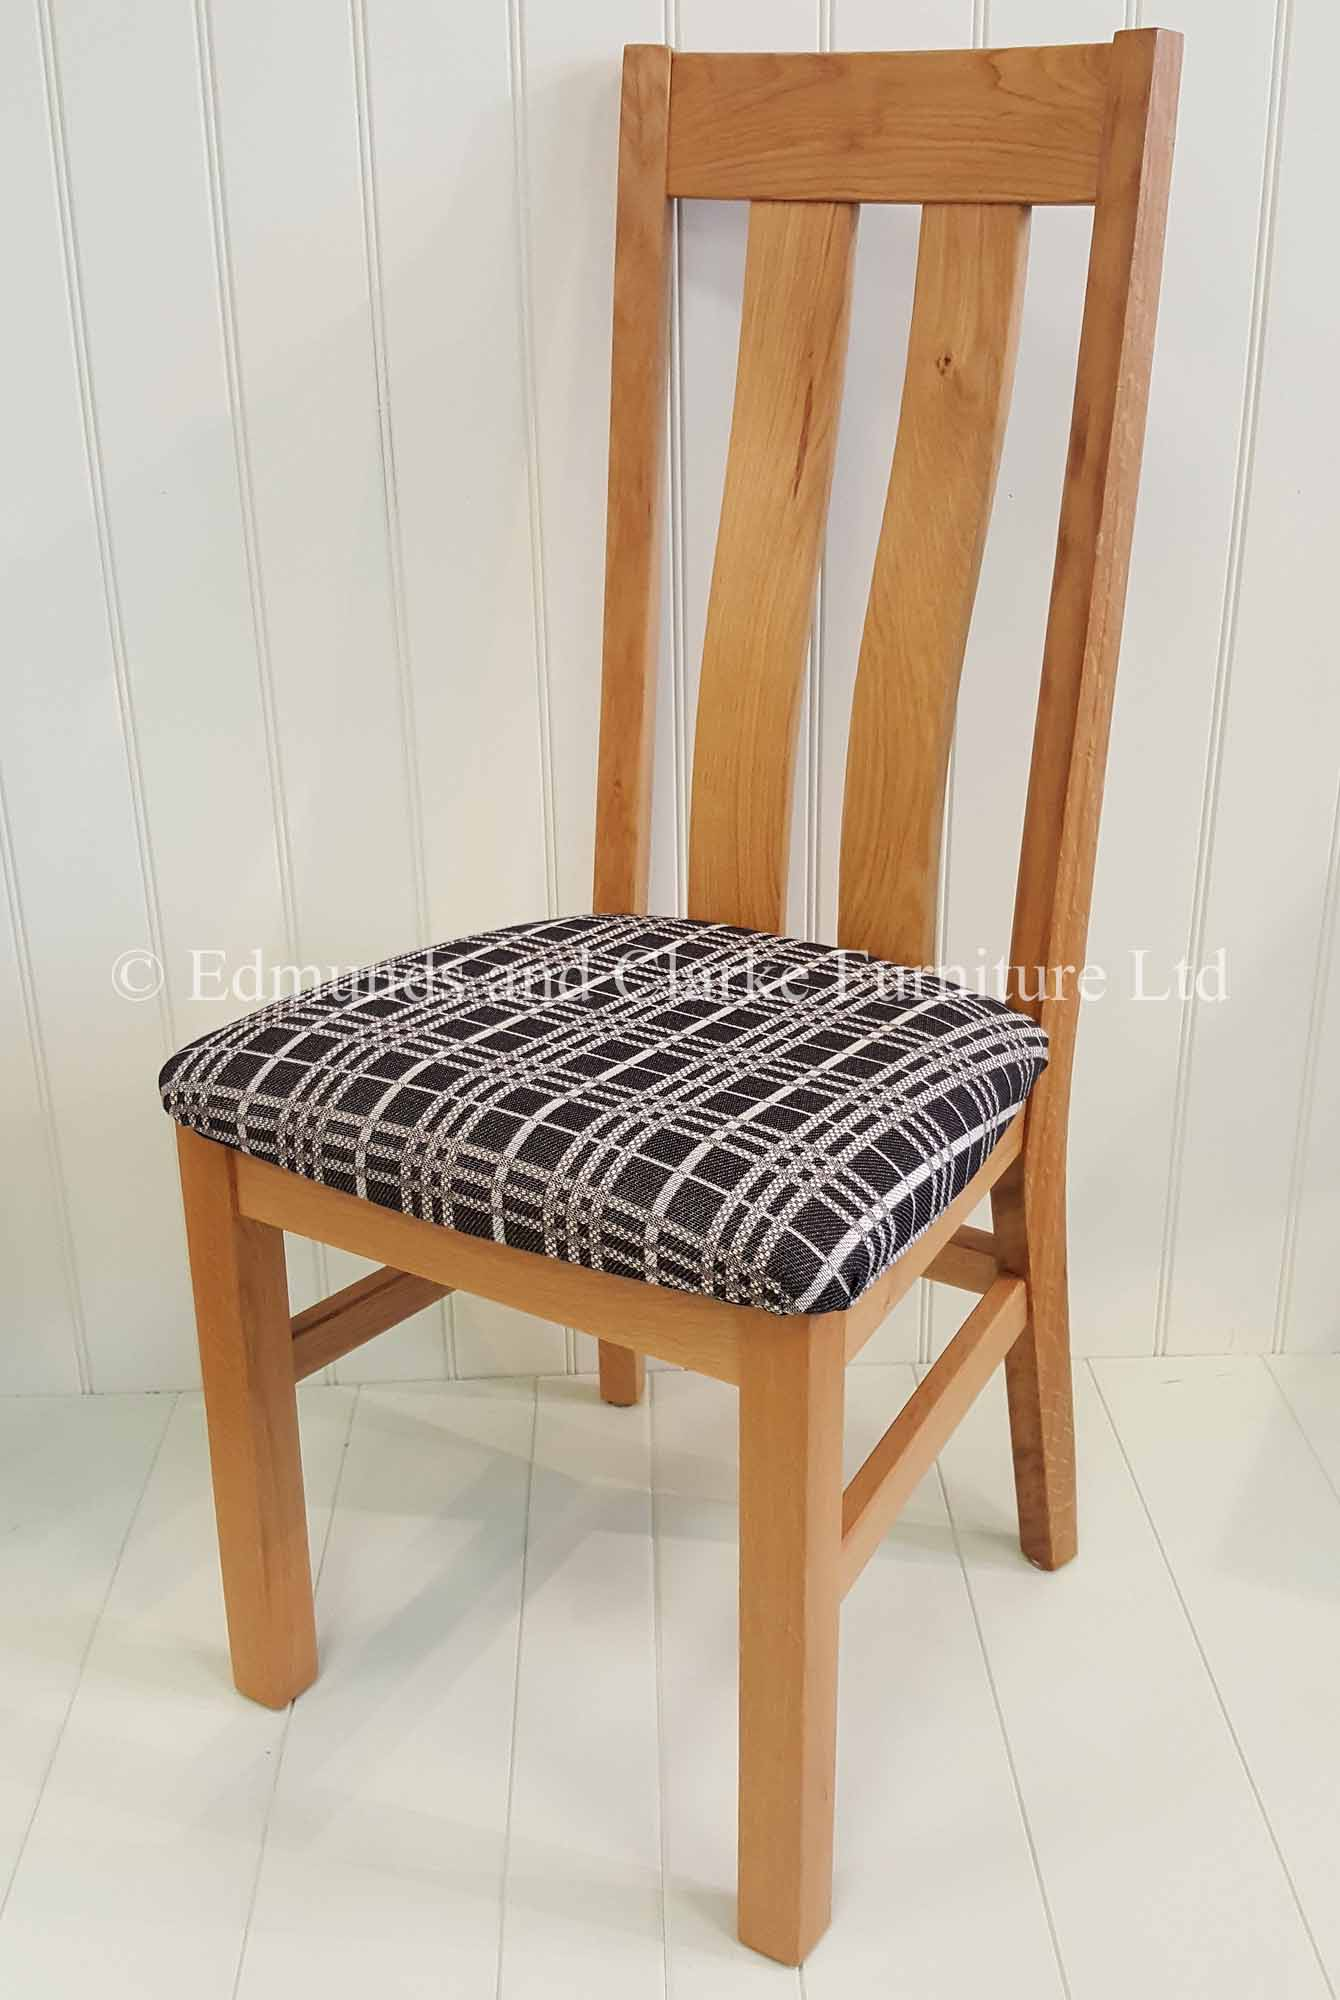 Edmunds Harris Oak Dining Chair, available a s fabric seat pad or standard oak seat various seat pads